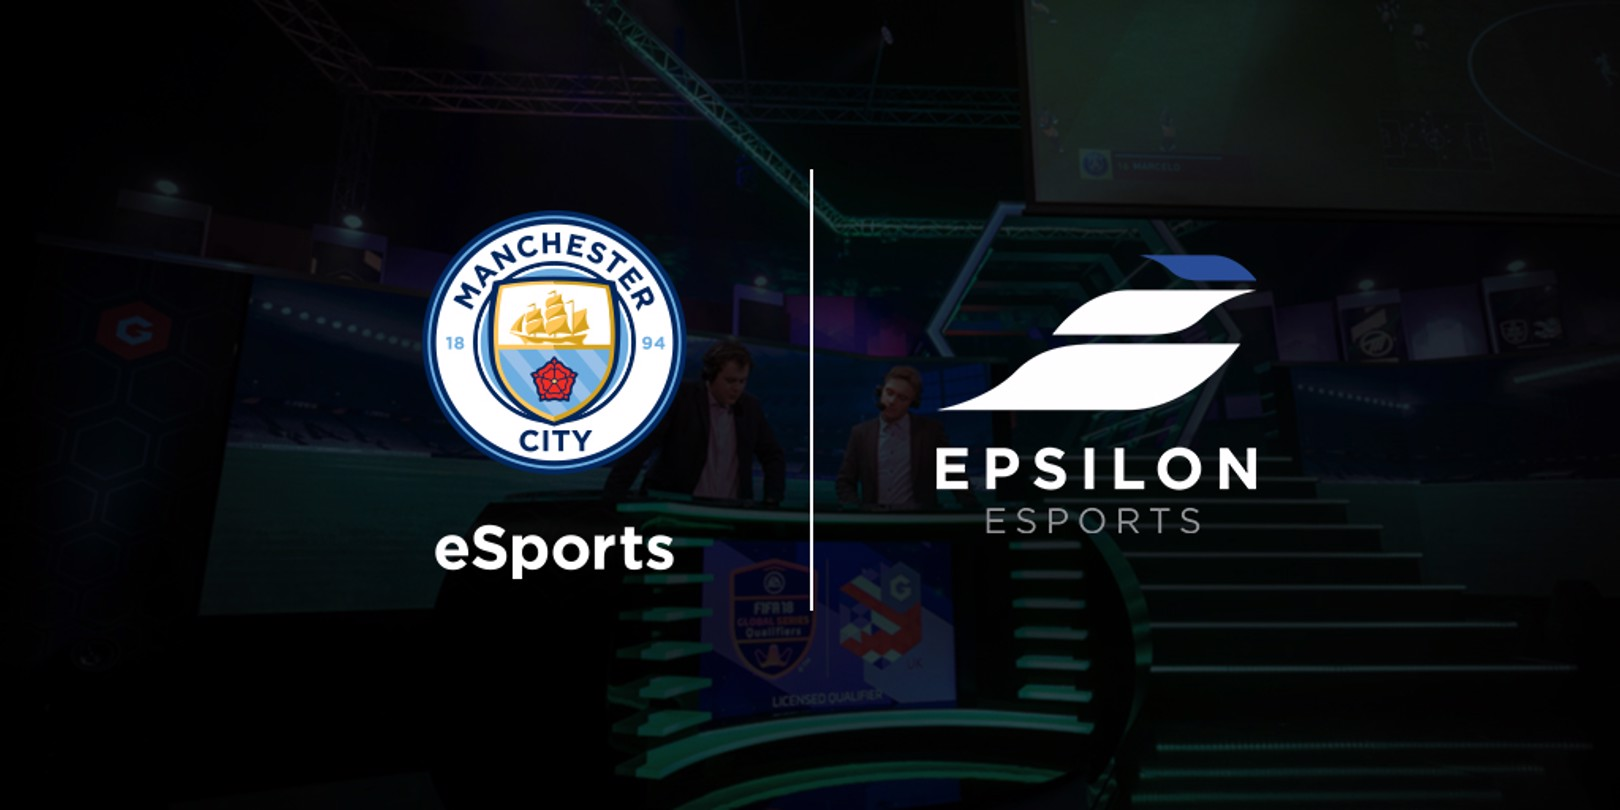 DEAL DONE: City and Epsilon have struck a partnership agreement